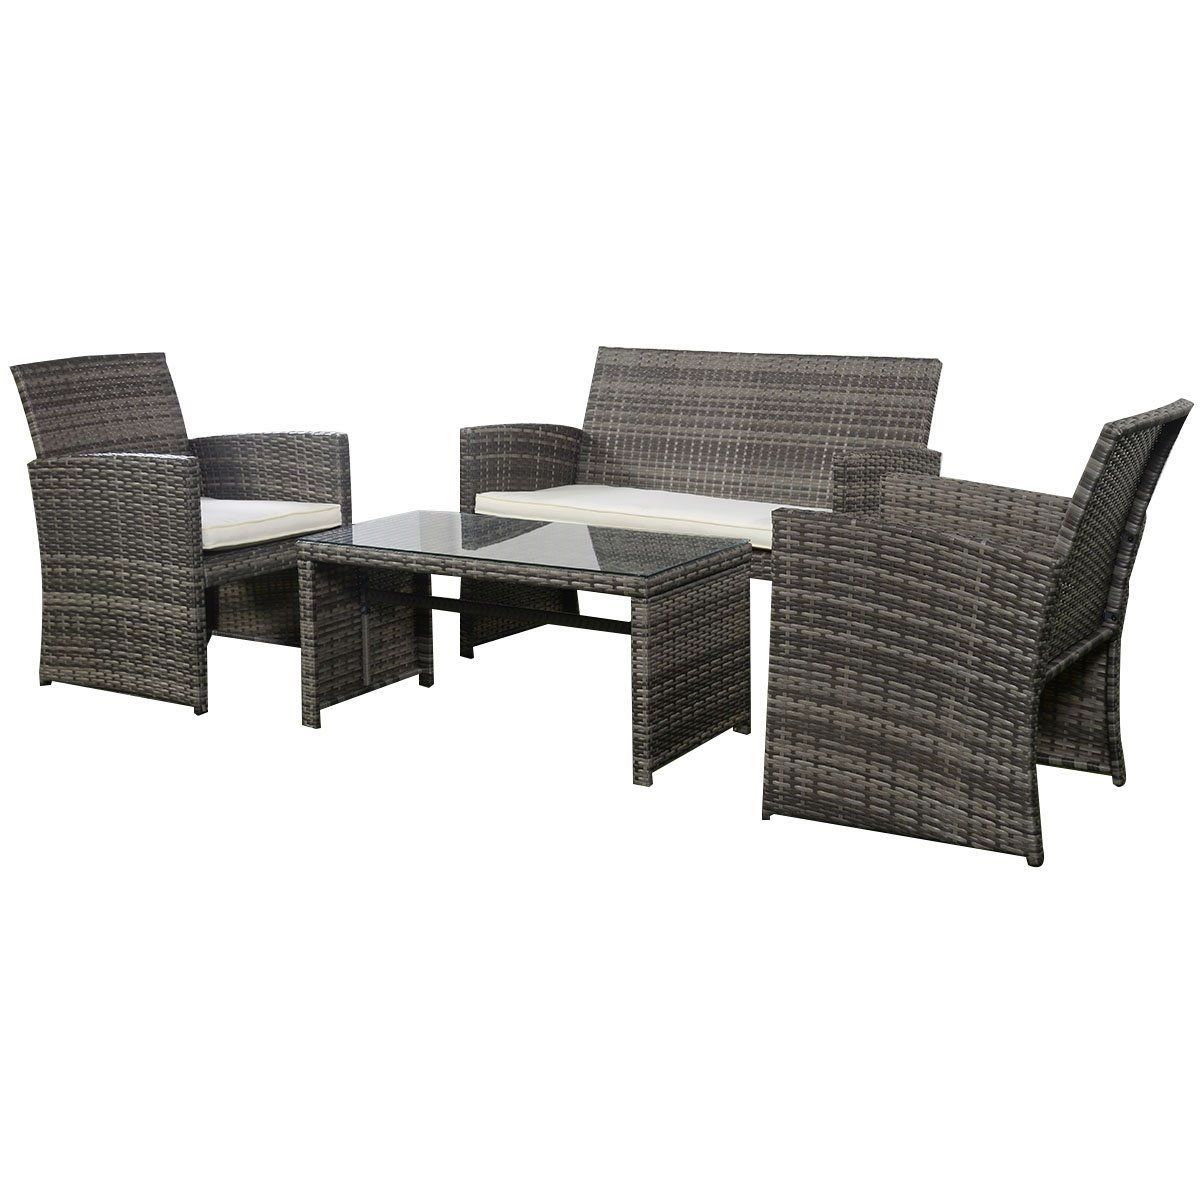 sliding glass patio doors with built in blinds. Grey Resin Wicker Rattan 4-Piece Patio Furniture Set With Seat Cushions Sliding Glass Doors Built In Blinds